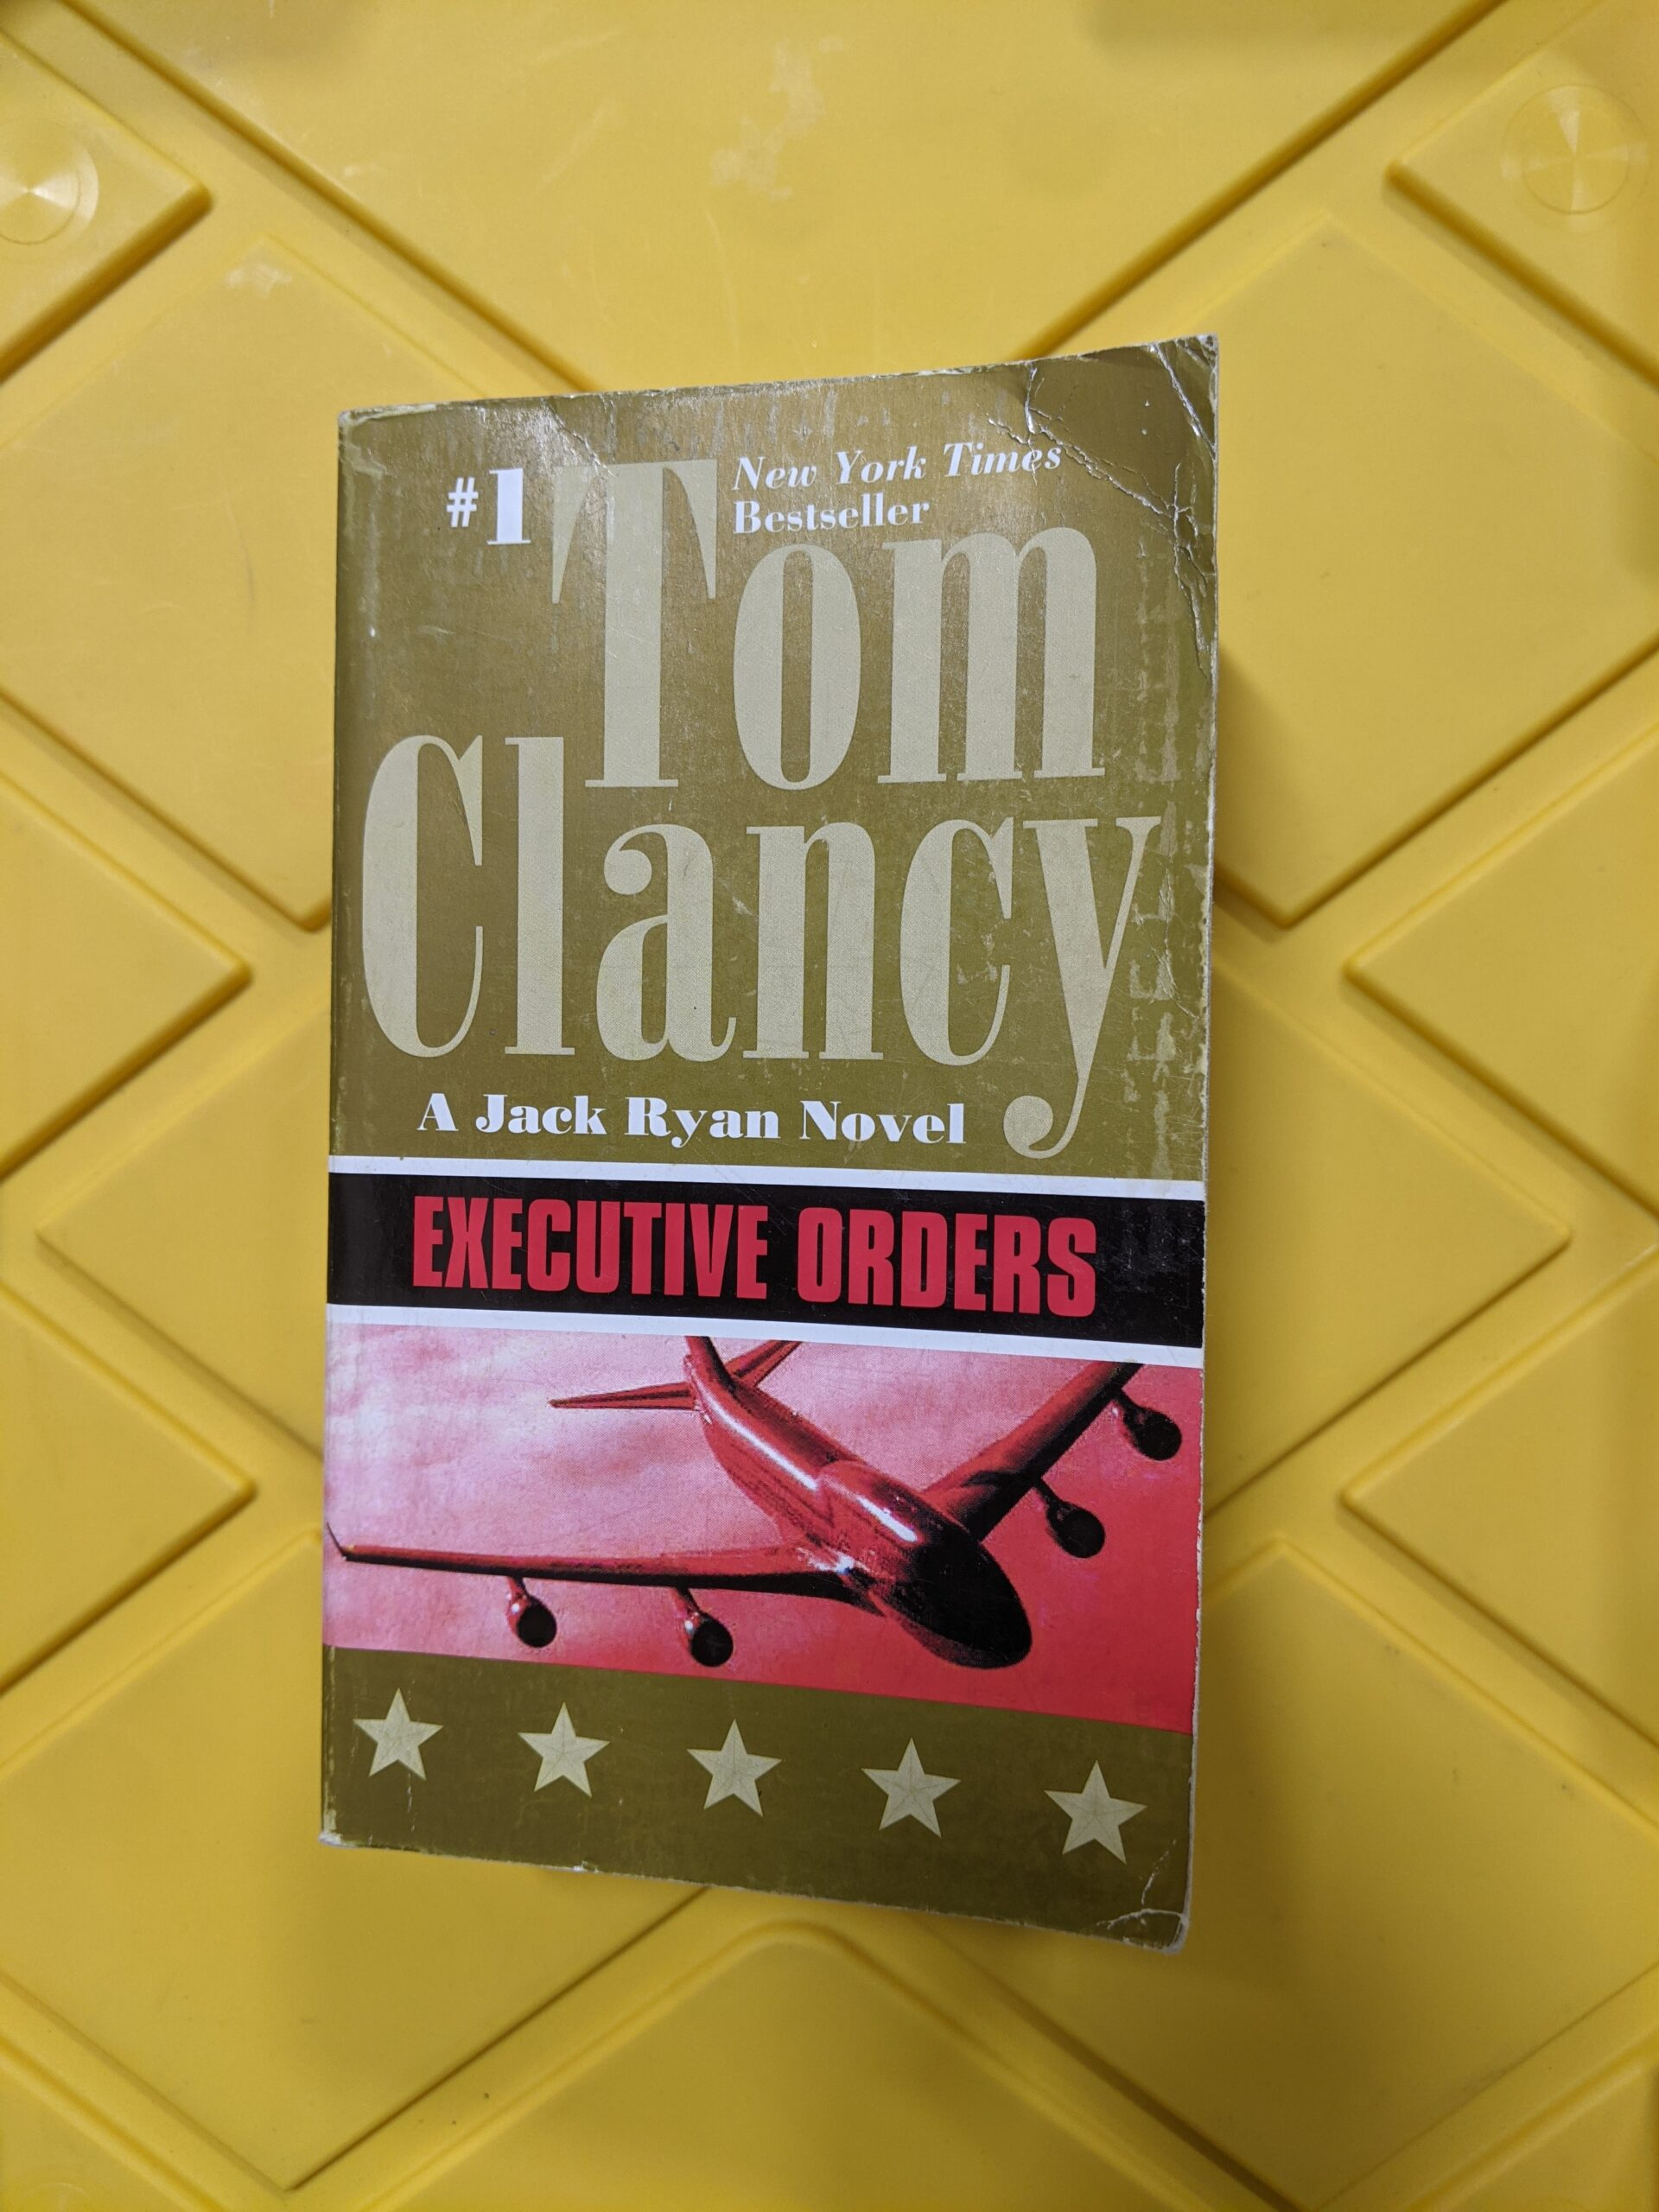 Executive Orders - A Jack Ryan Novel by Tom Clancy 1996